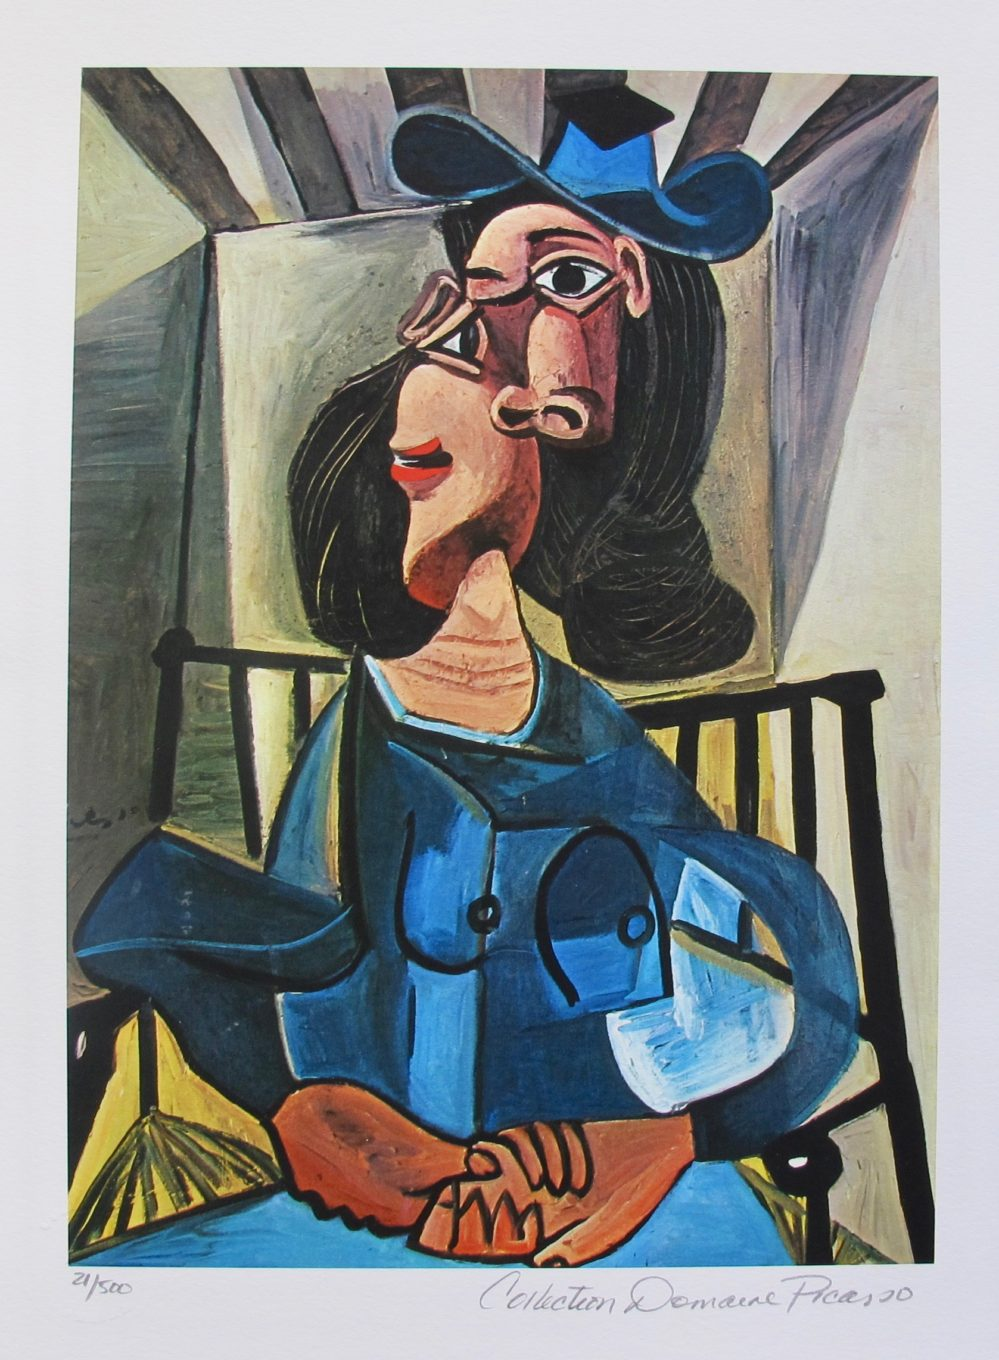 Pablo Picasso WOMAN WITH HAT SEATED IN ARMCHAIR Estate Signed Limited Edition Small Giclee